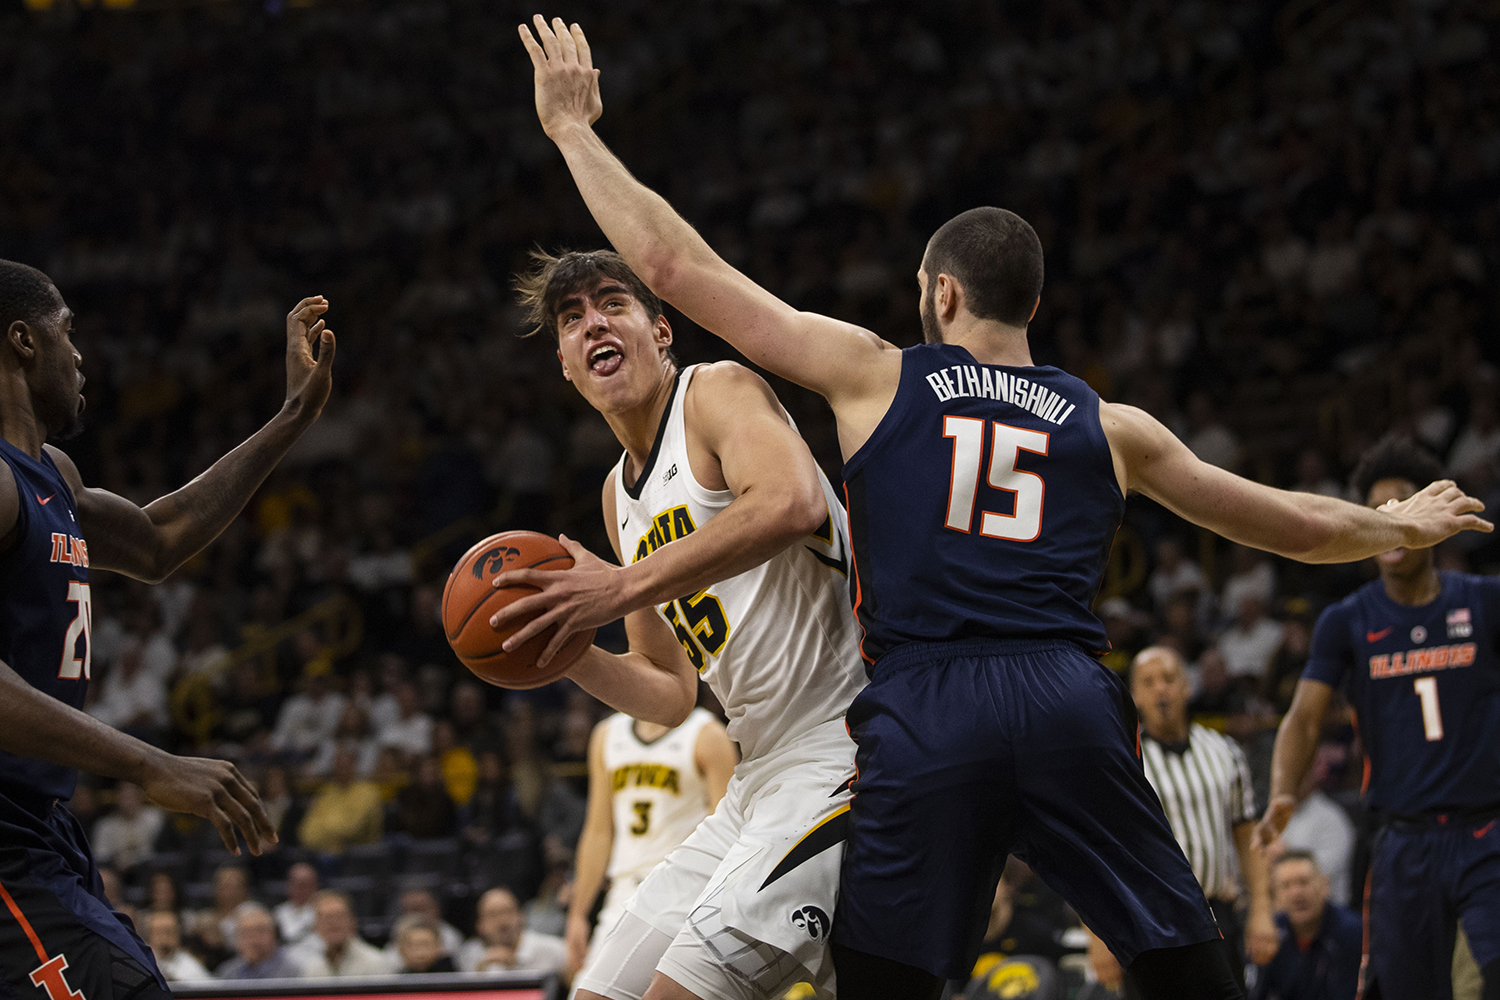 Iowa+forward+Luka+Garza+looks+to+attempt+a+shot+during+the+Iowa%2FIllinois+men%27s+basketball+game+at+Carver-Hawkeye+Arena+on+Sunday%2C+January+20%2C+2019.+The+Hawkeyes+defeated+the+Fighting+Illini%2C+95-71.+